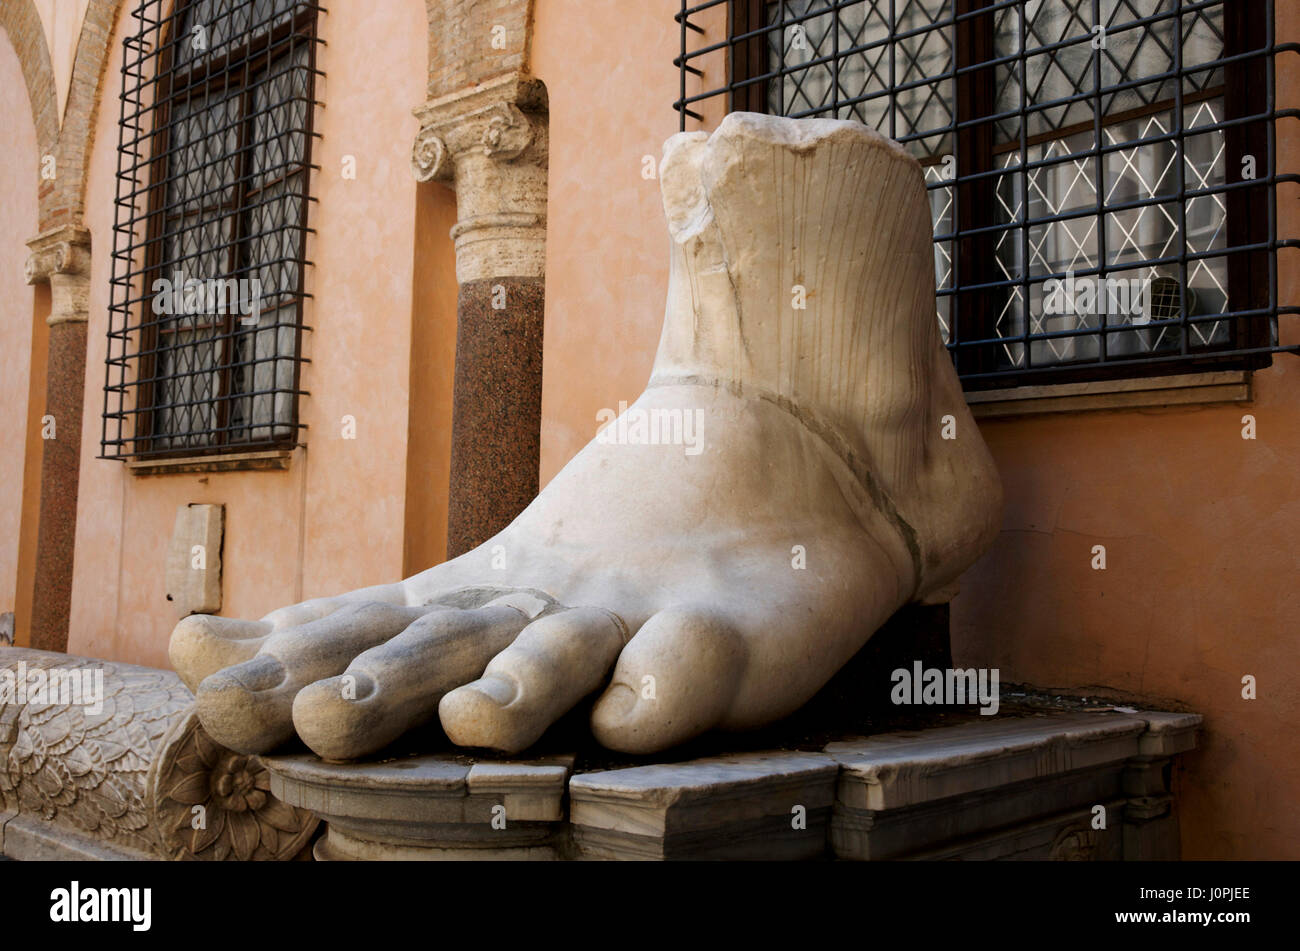 Foot of a gigantic statue of Emperor Constantine in the Palazzo dei Conservatori at the Capitoline Museums, Rome, - Stock Image